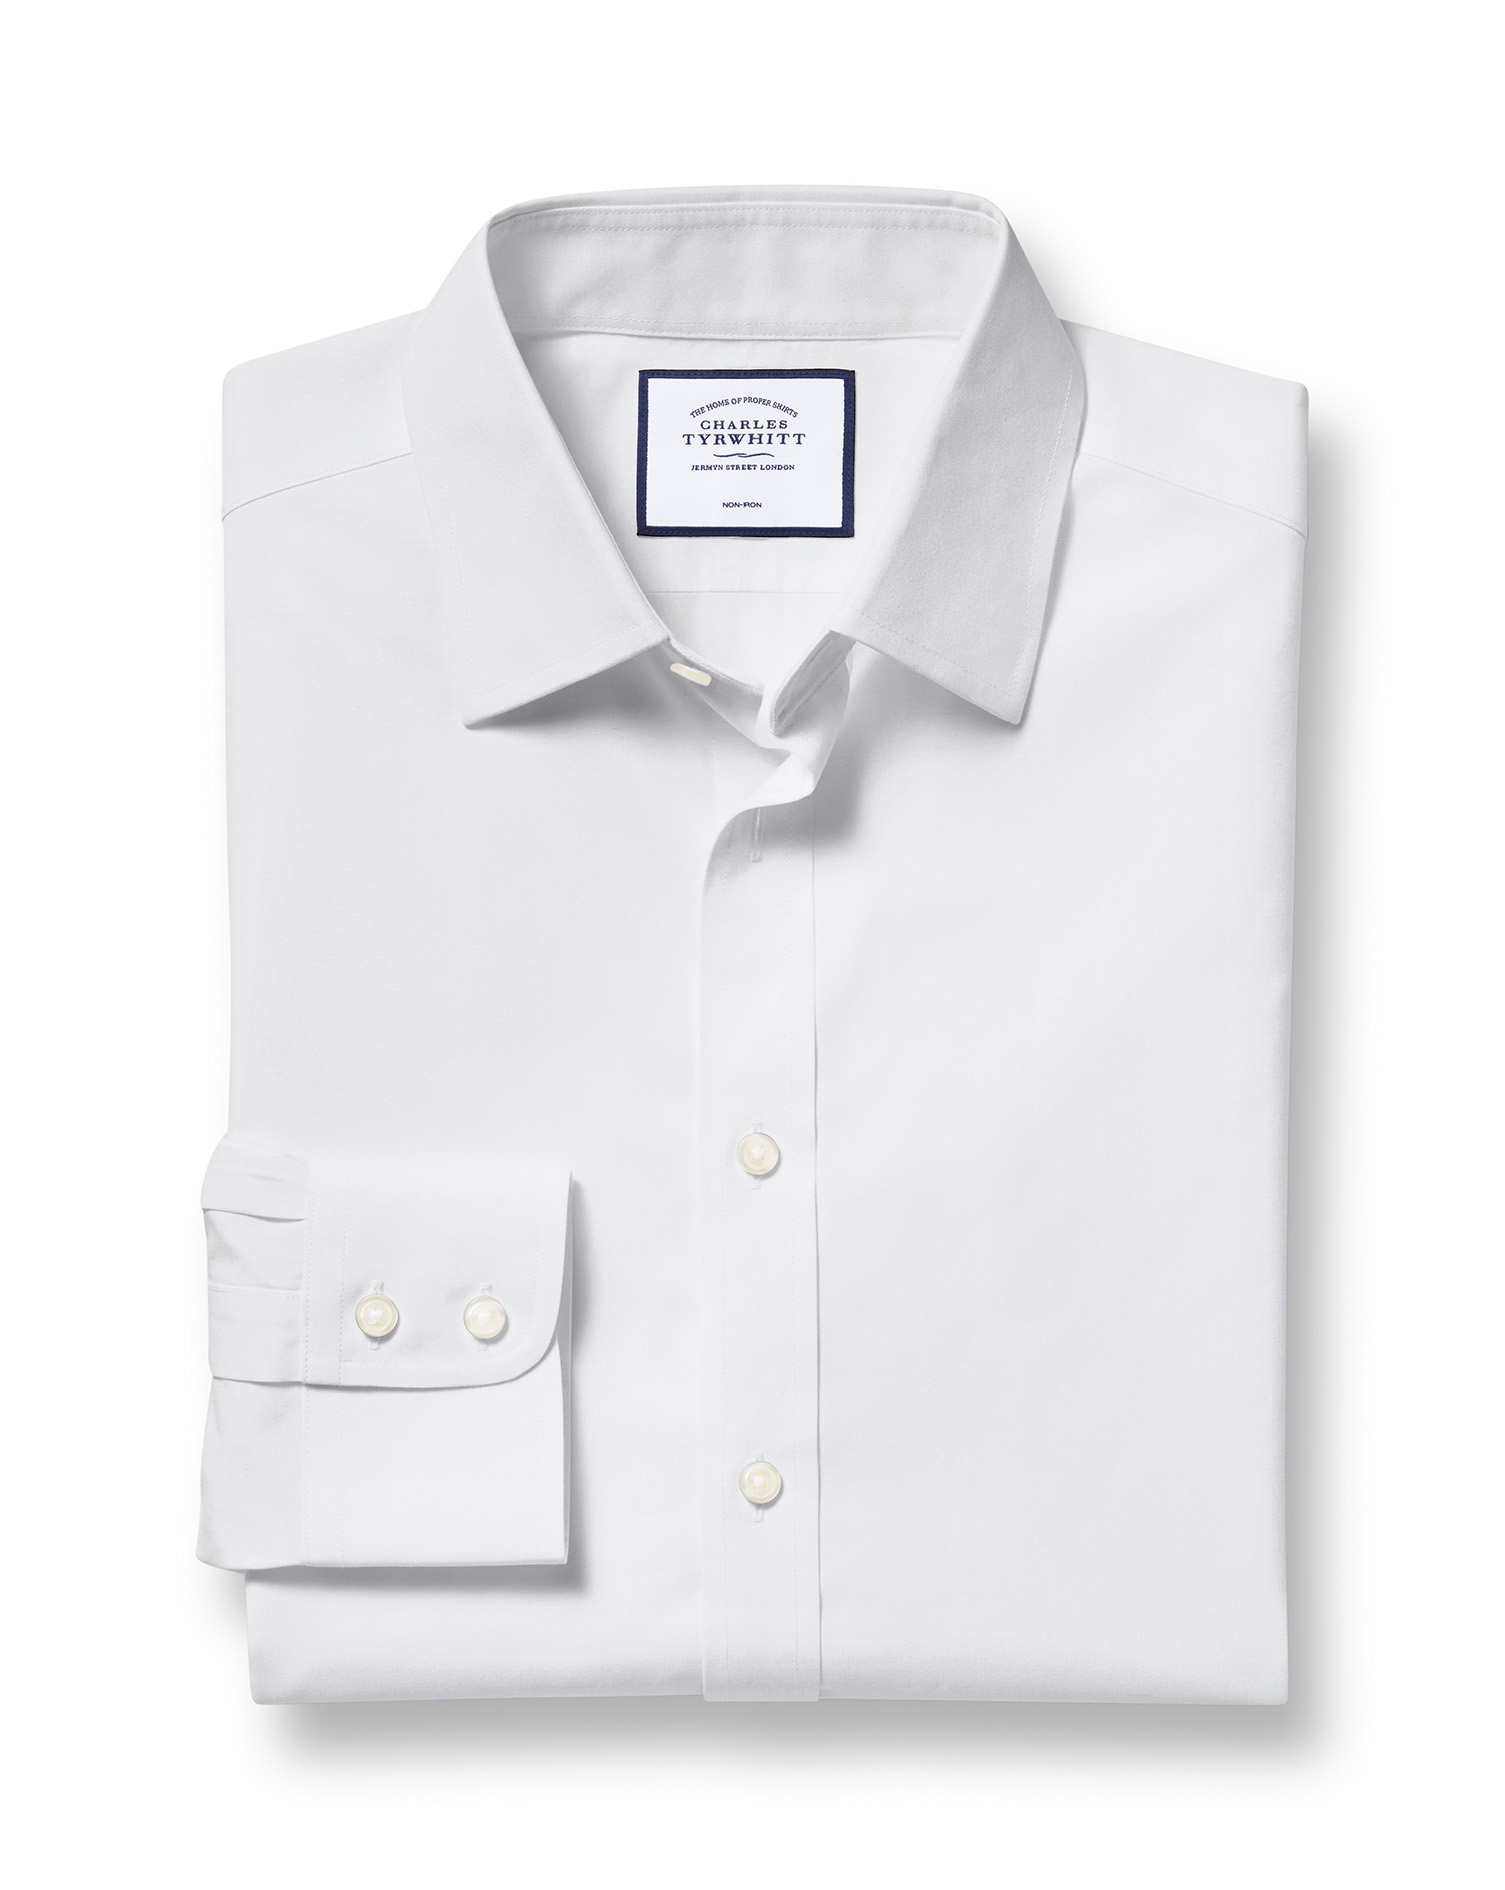 Extra Slim Fit Non-Iron Poplin White Cotton Formal Shirt Double Cuff Size 16.5/33 by Charles Tyrwhit